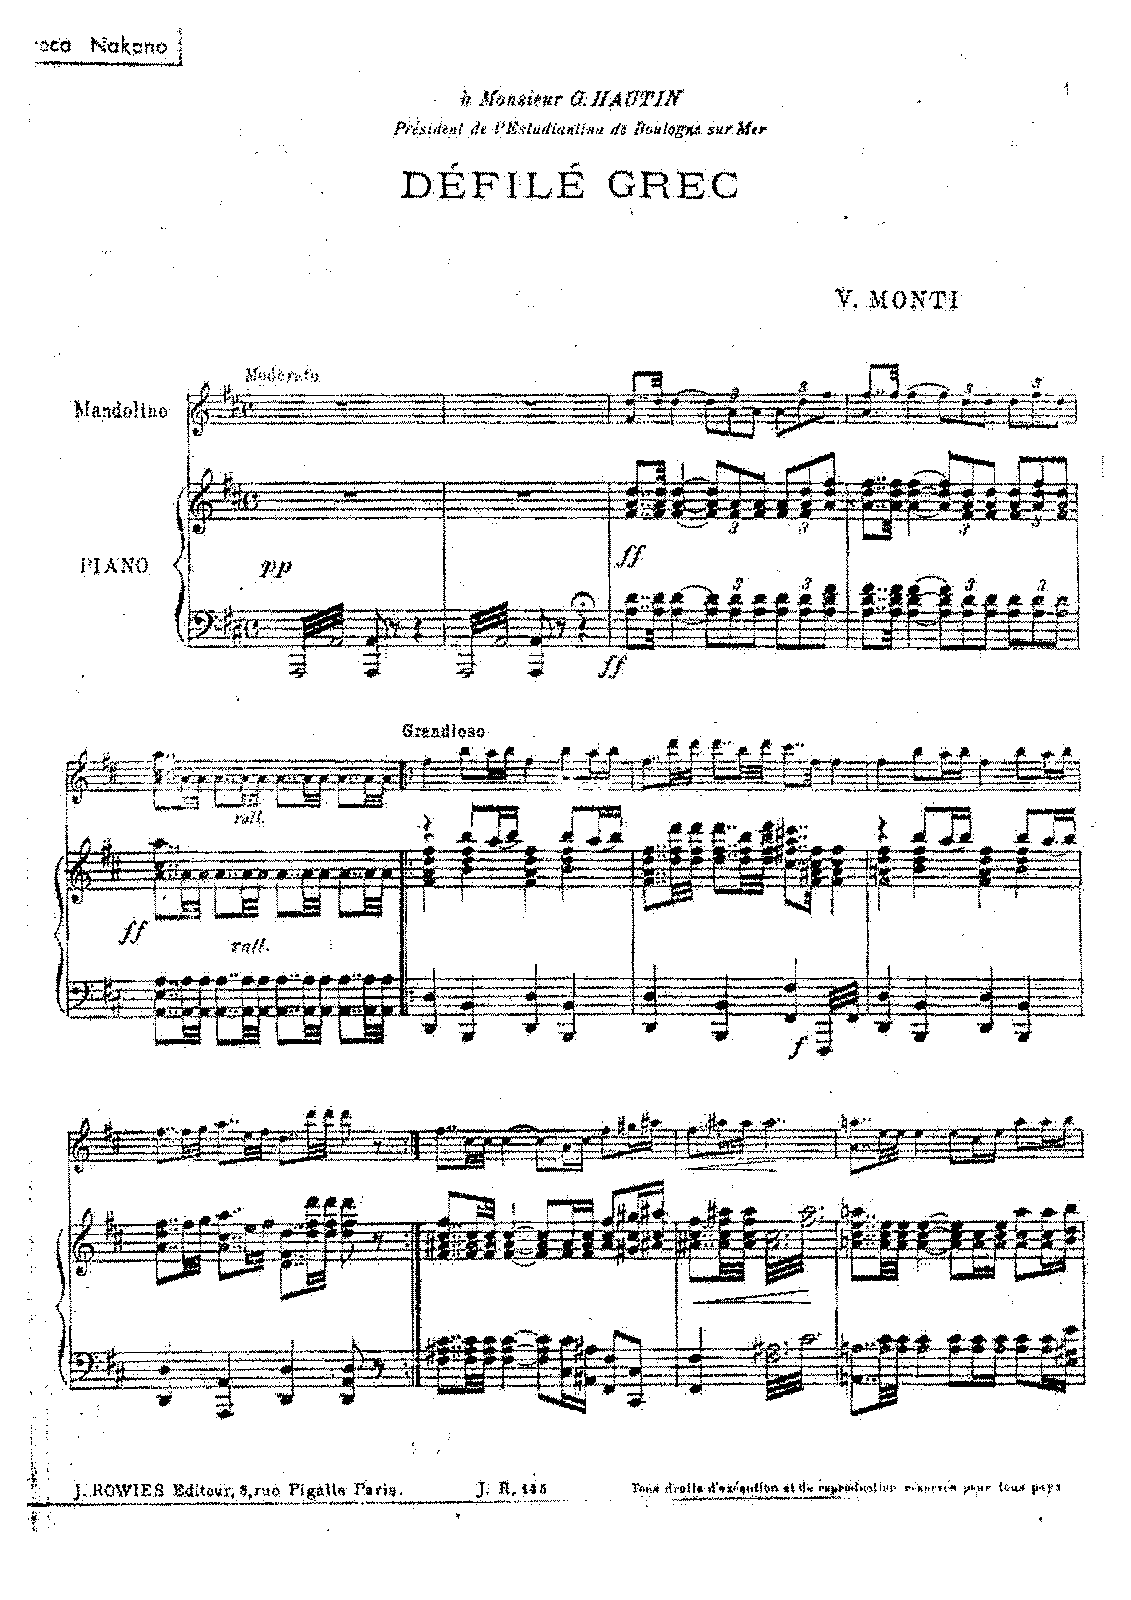 PMLP311244-Monti - Defile Grec for Mandoline and piano.pdf